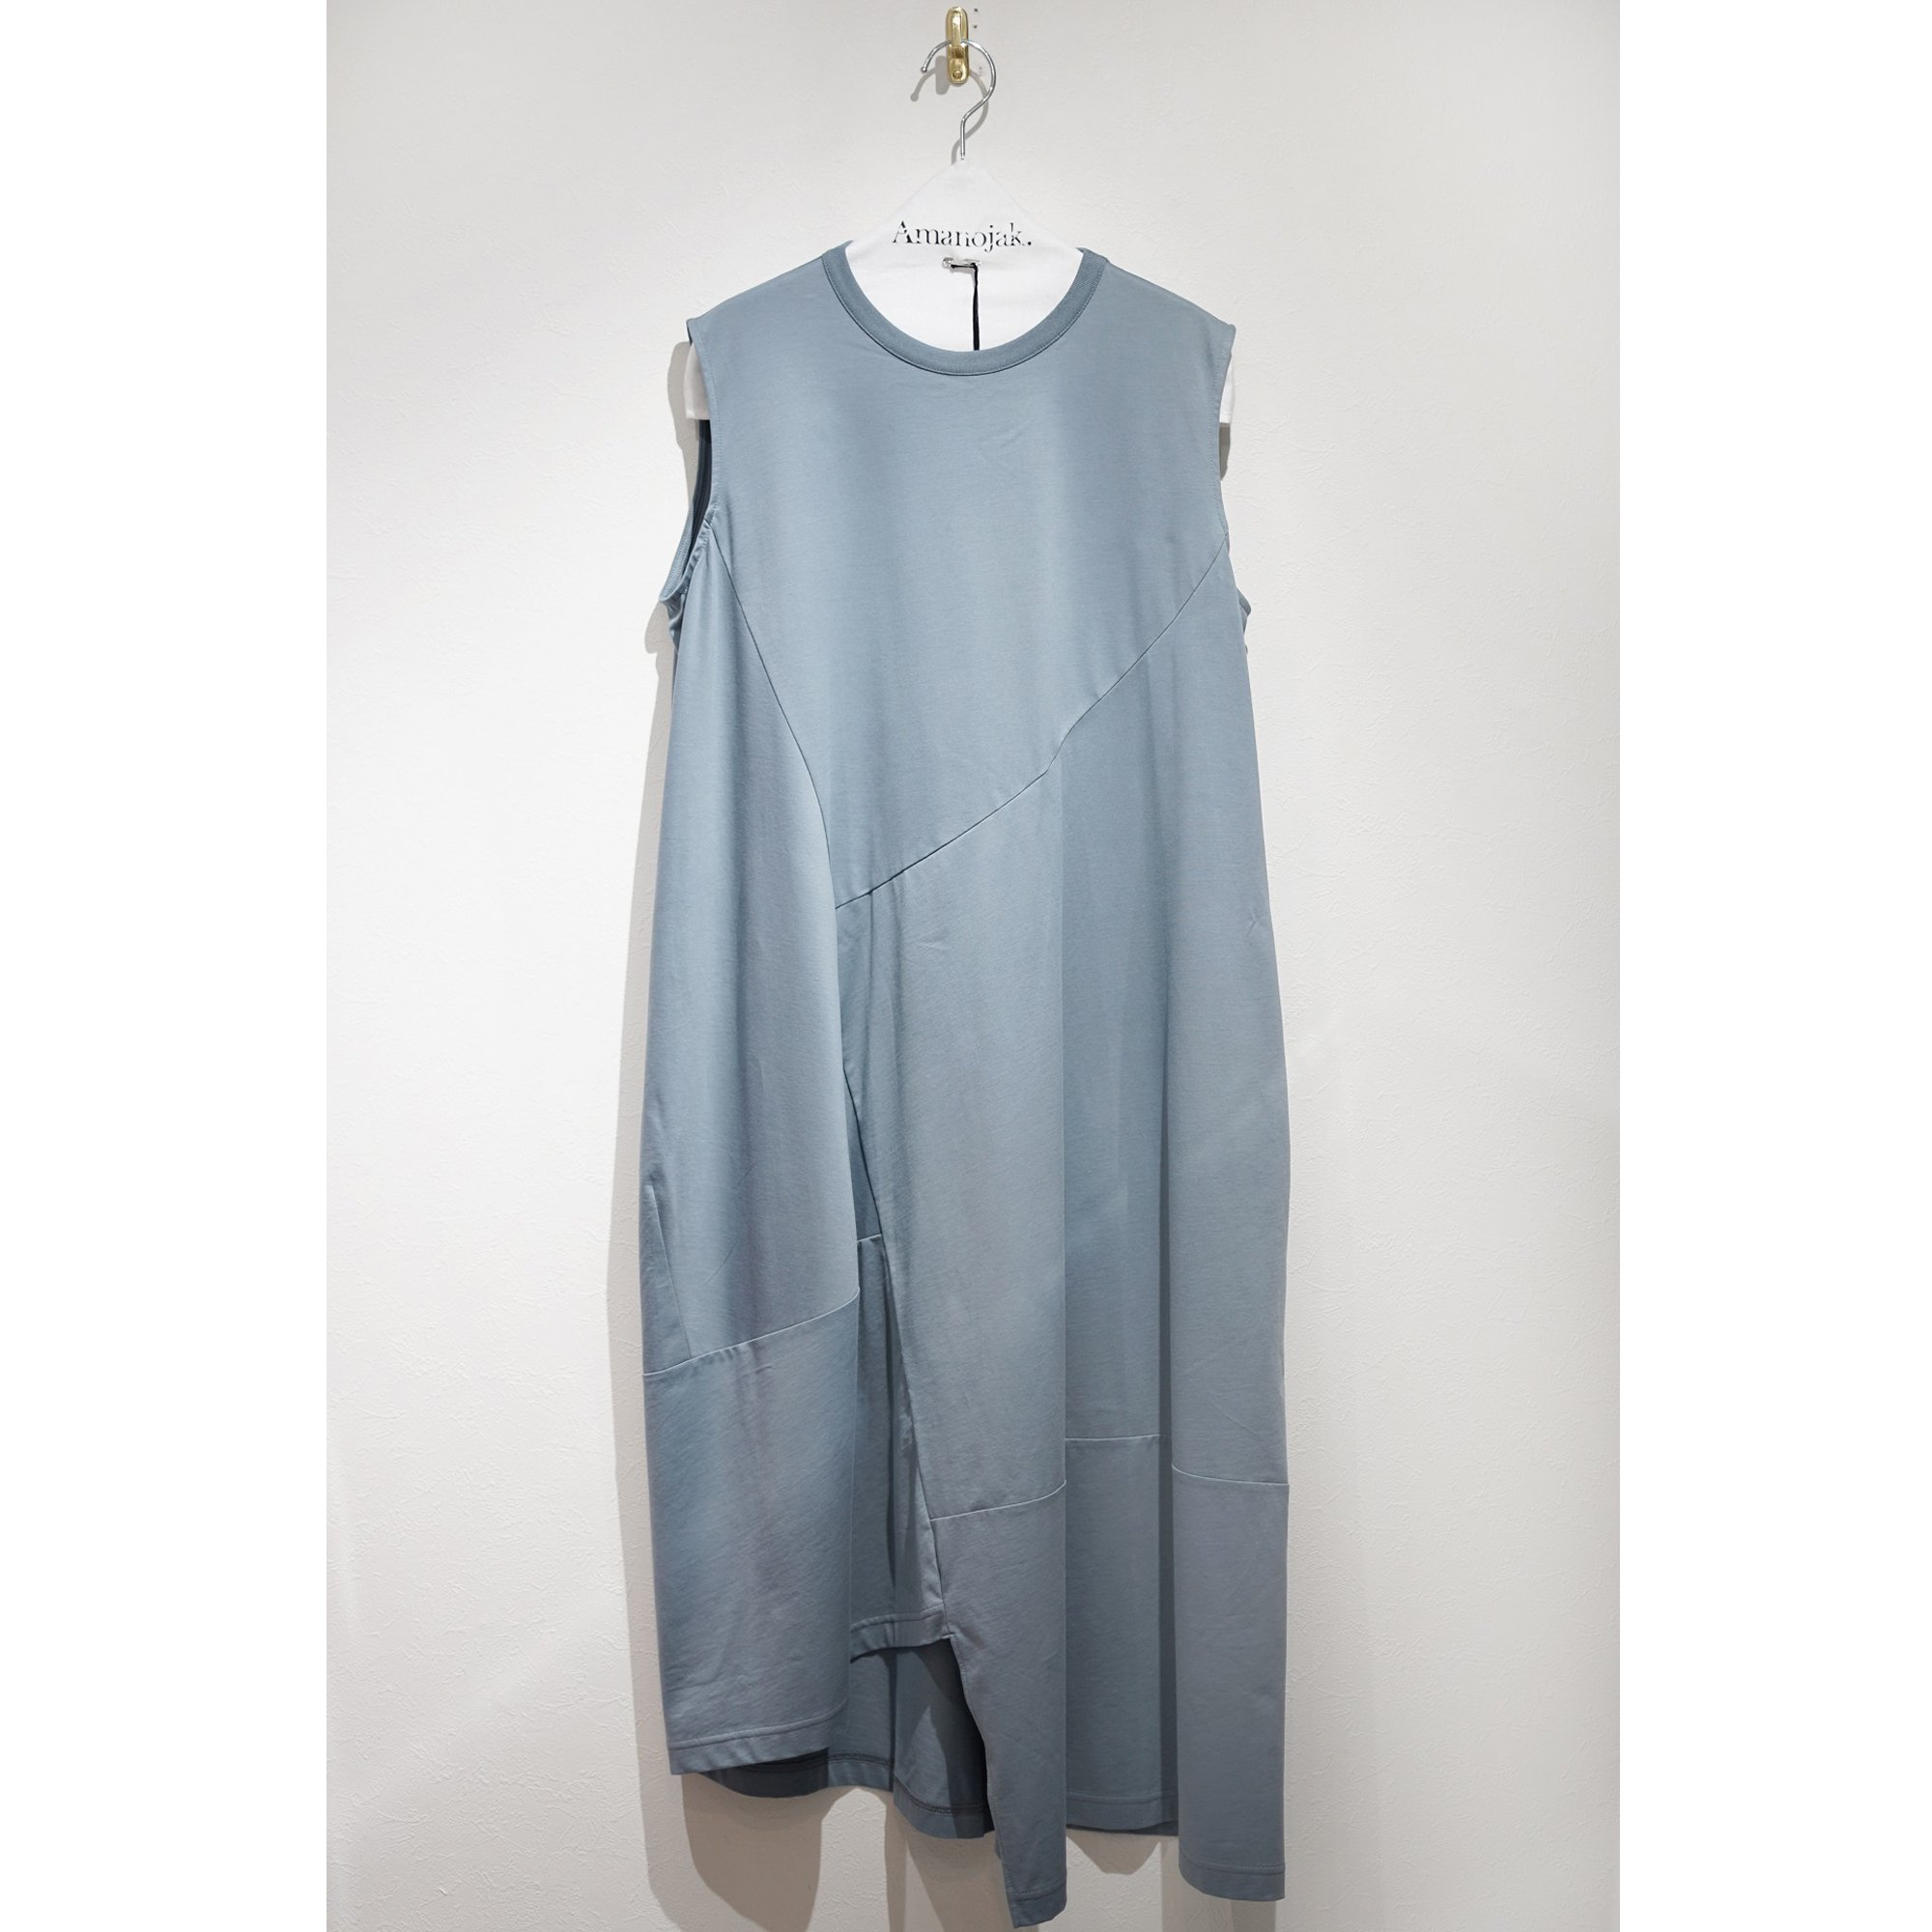 08sircus-CROSS JERSEY SWITCHING DRESS BLUE GRAY